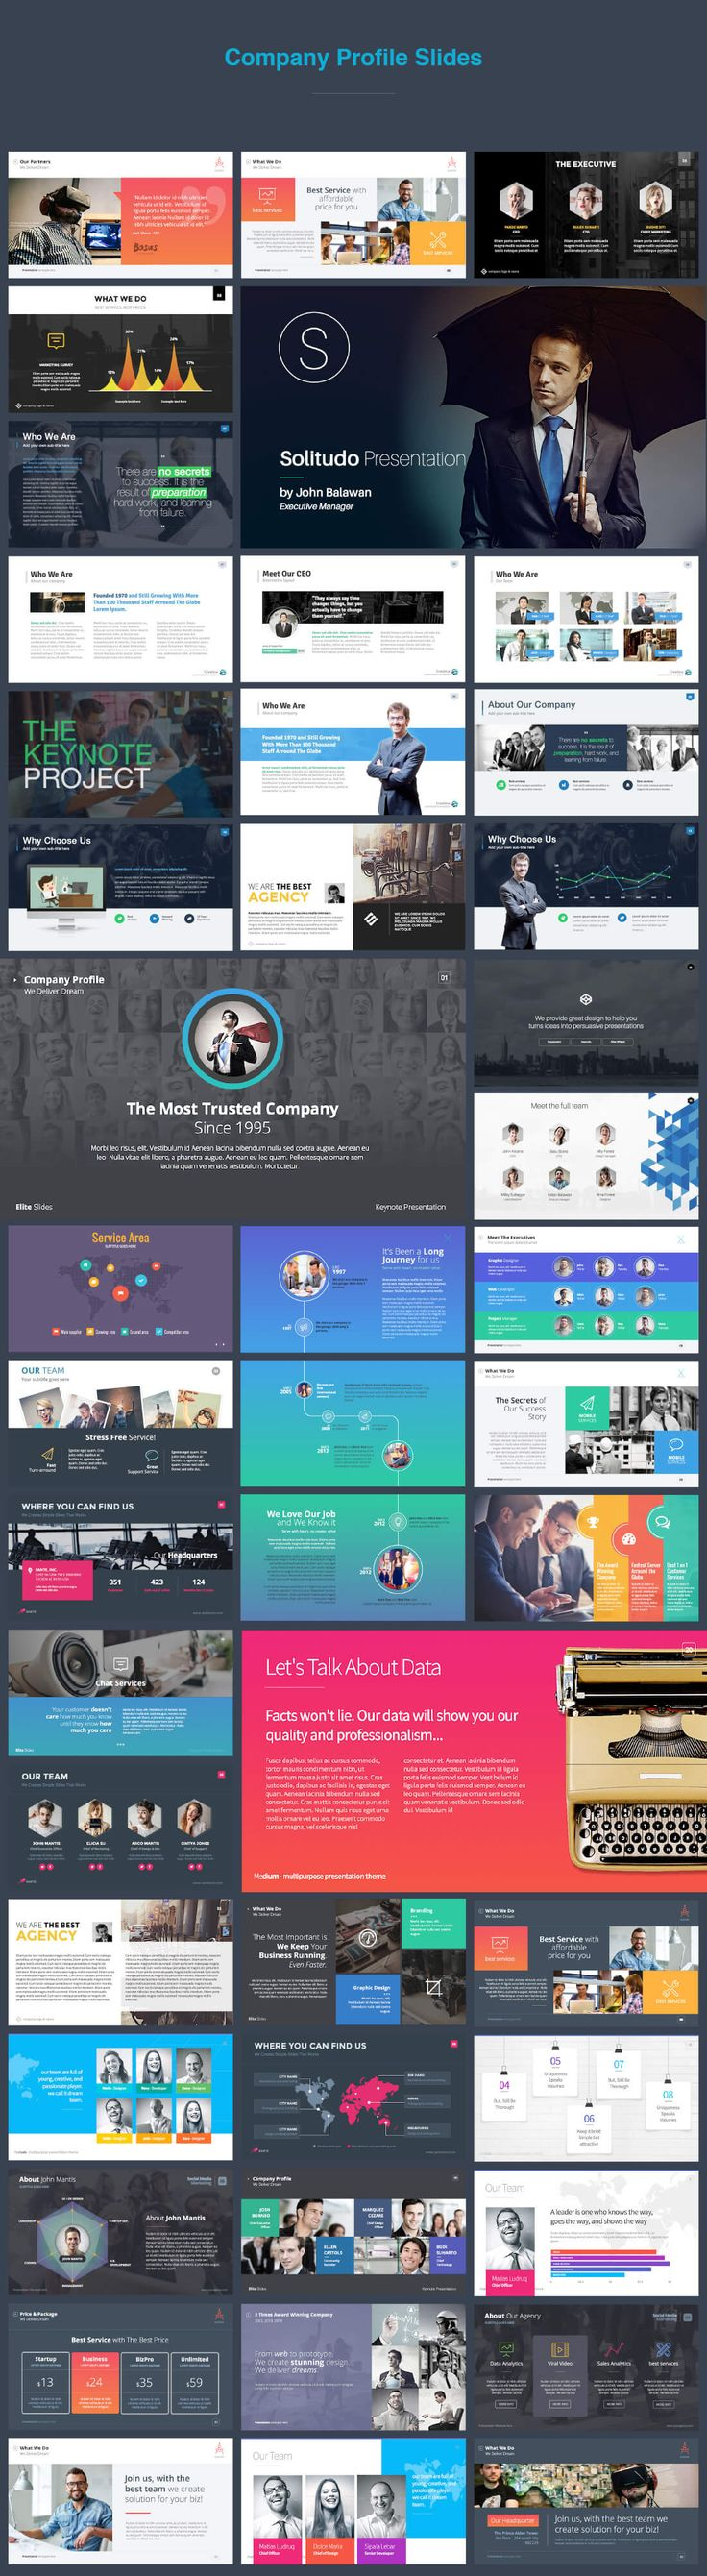 30 Keynote Templates (6100+ slides) from Slidehack - only $37! - MightyDeals